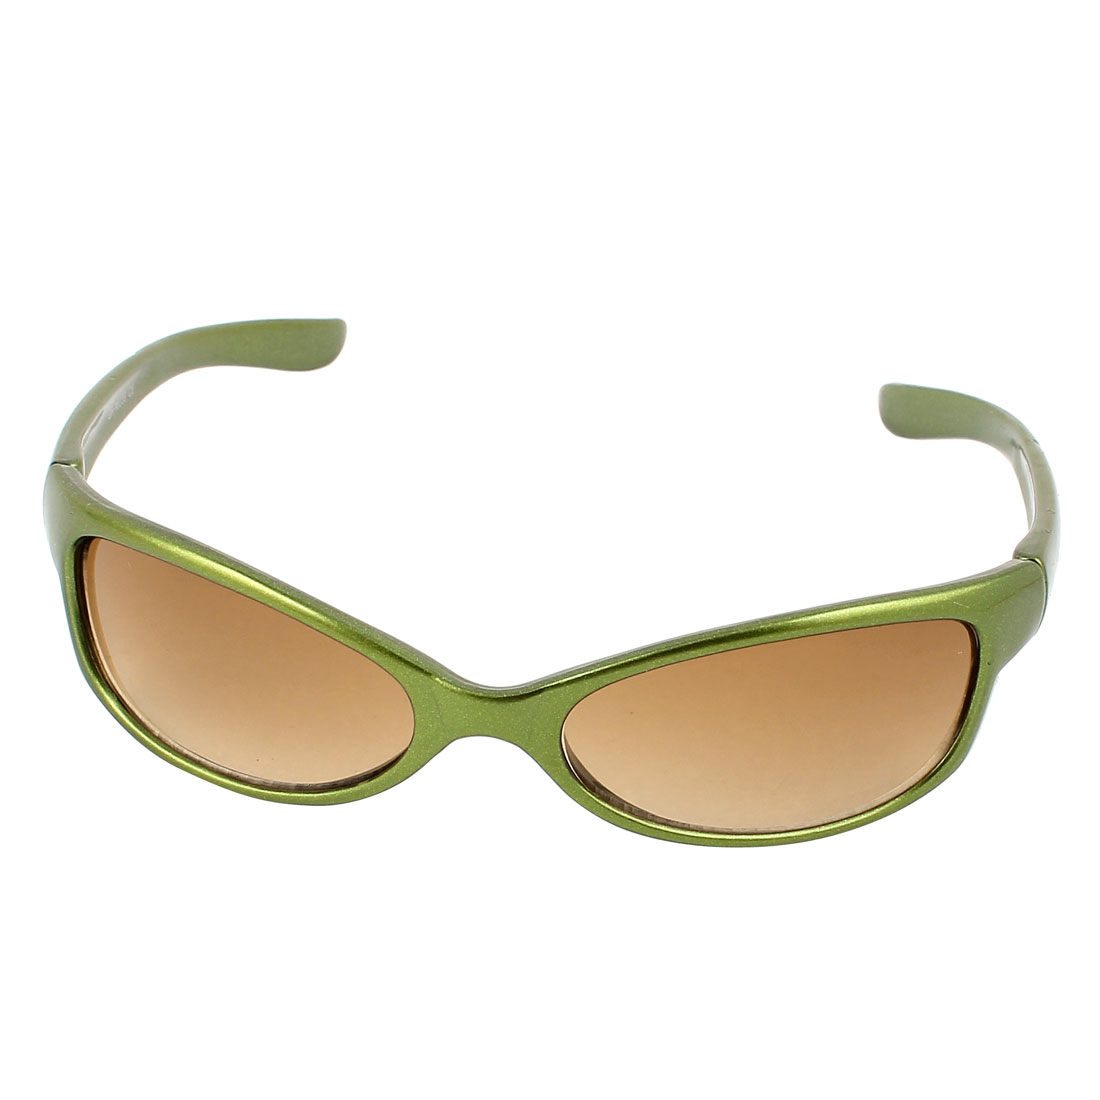 Women Lady Slim Frame Sunglasses Outdoor Eyewear Shades Glasses Green